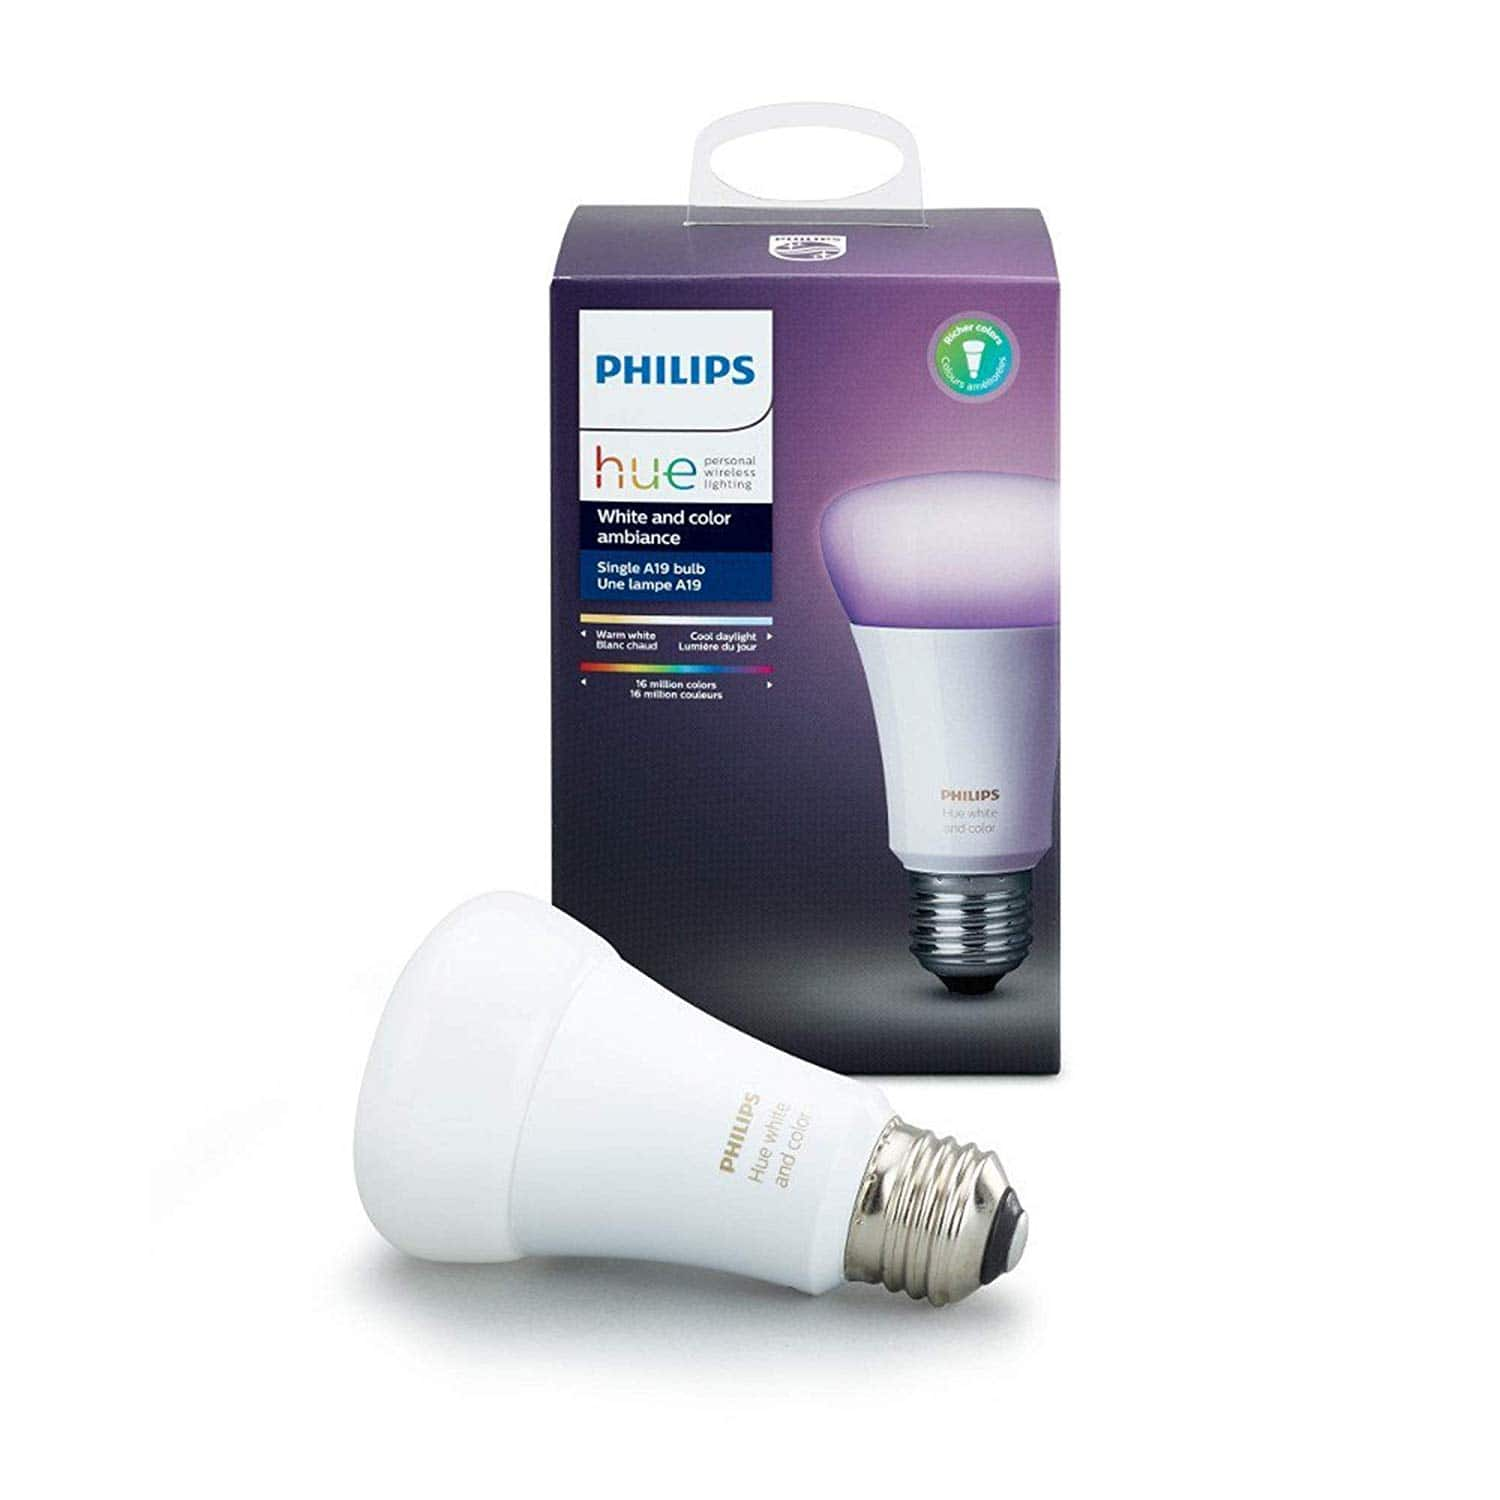 Philips Hue Color Ambiance A19 60W Equivalent Dimmable LED Smart Bulb Compatible with Amazon Alexa, Apple HomeKit, and Google Assistant [Standard] $35.97